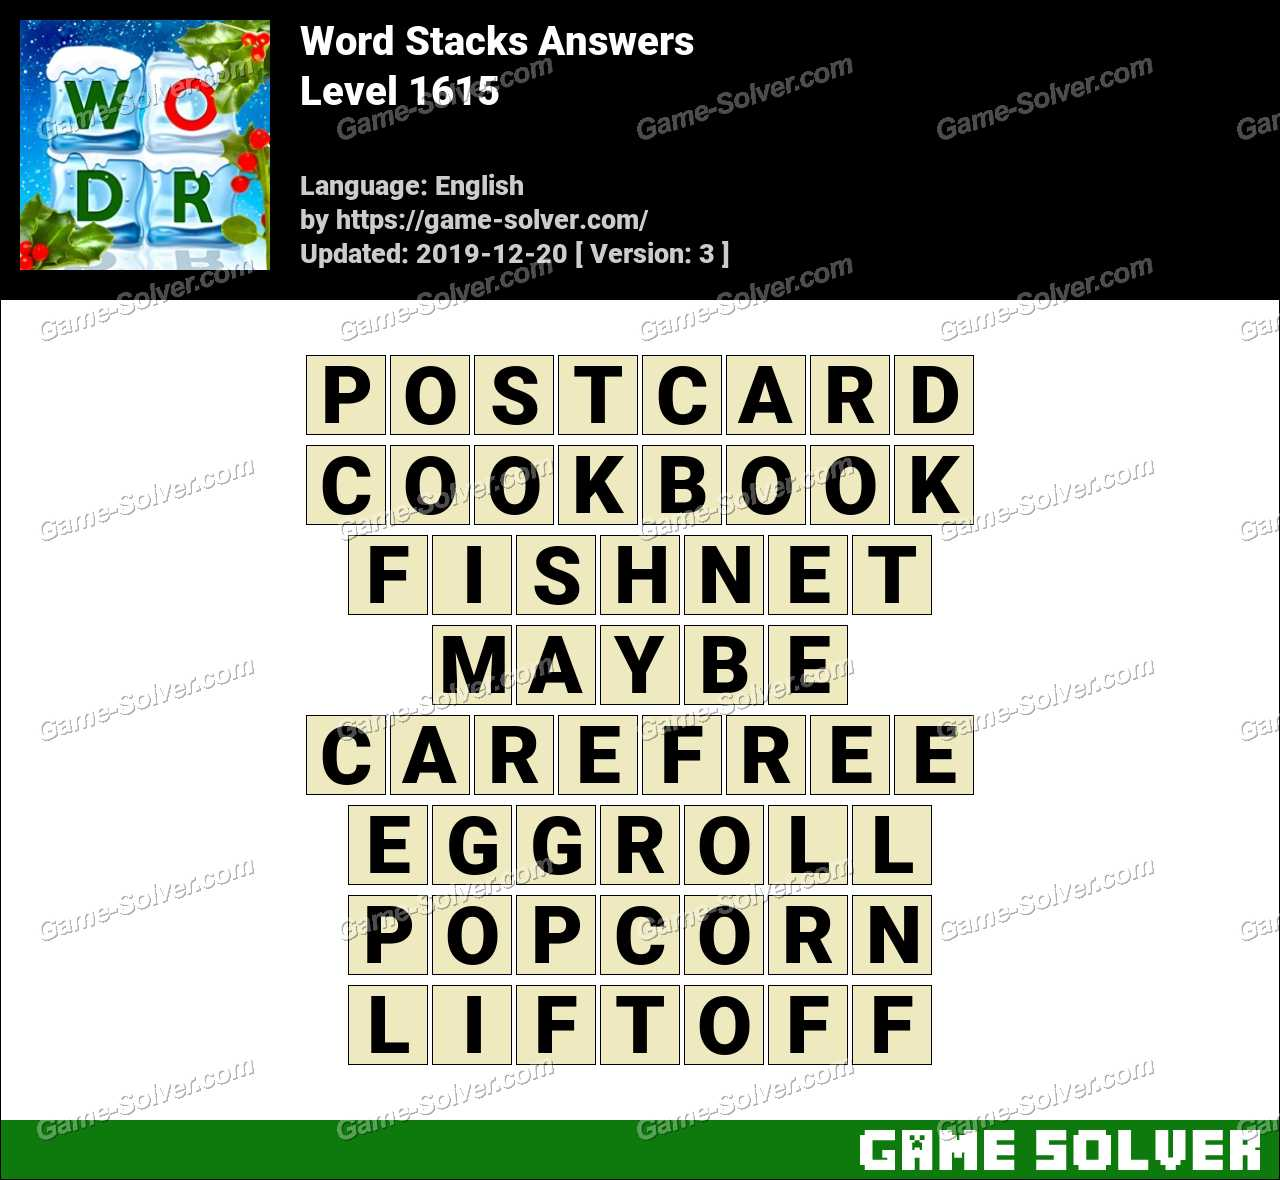 Word Stacks Level 1615 Answers